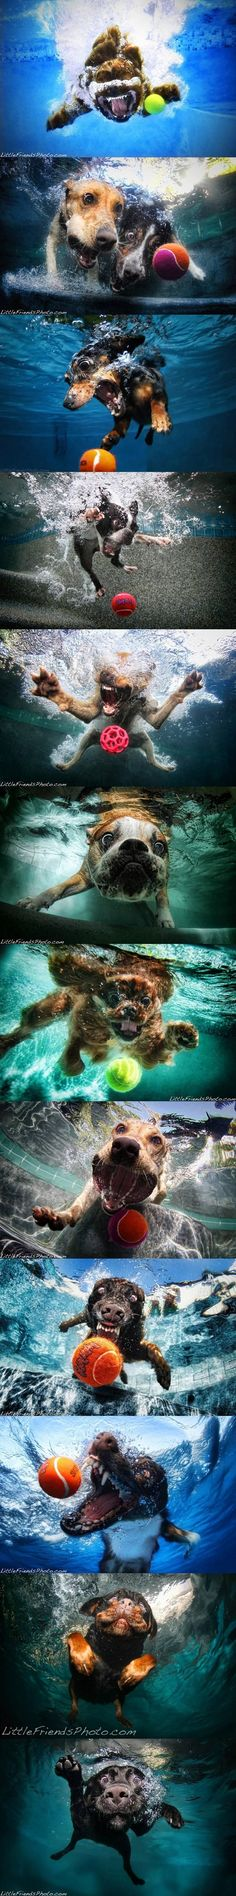 dogs under water. love it!